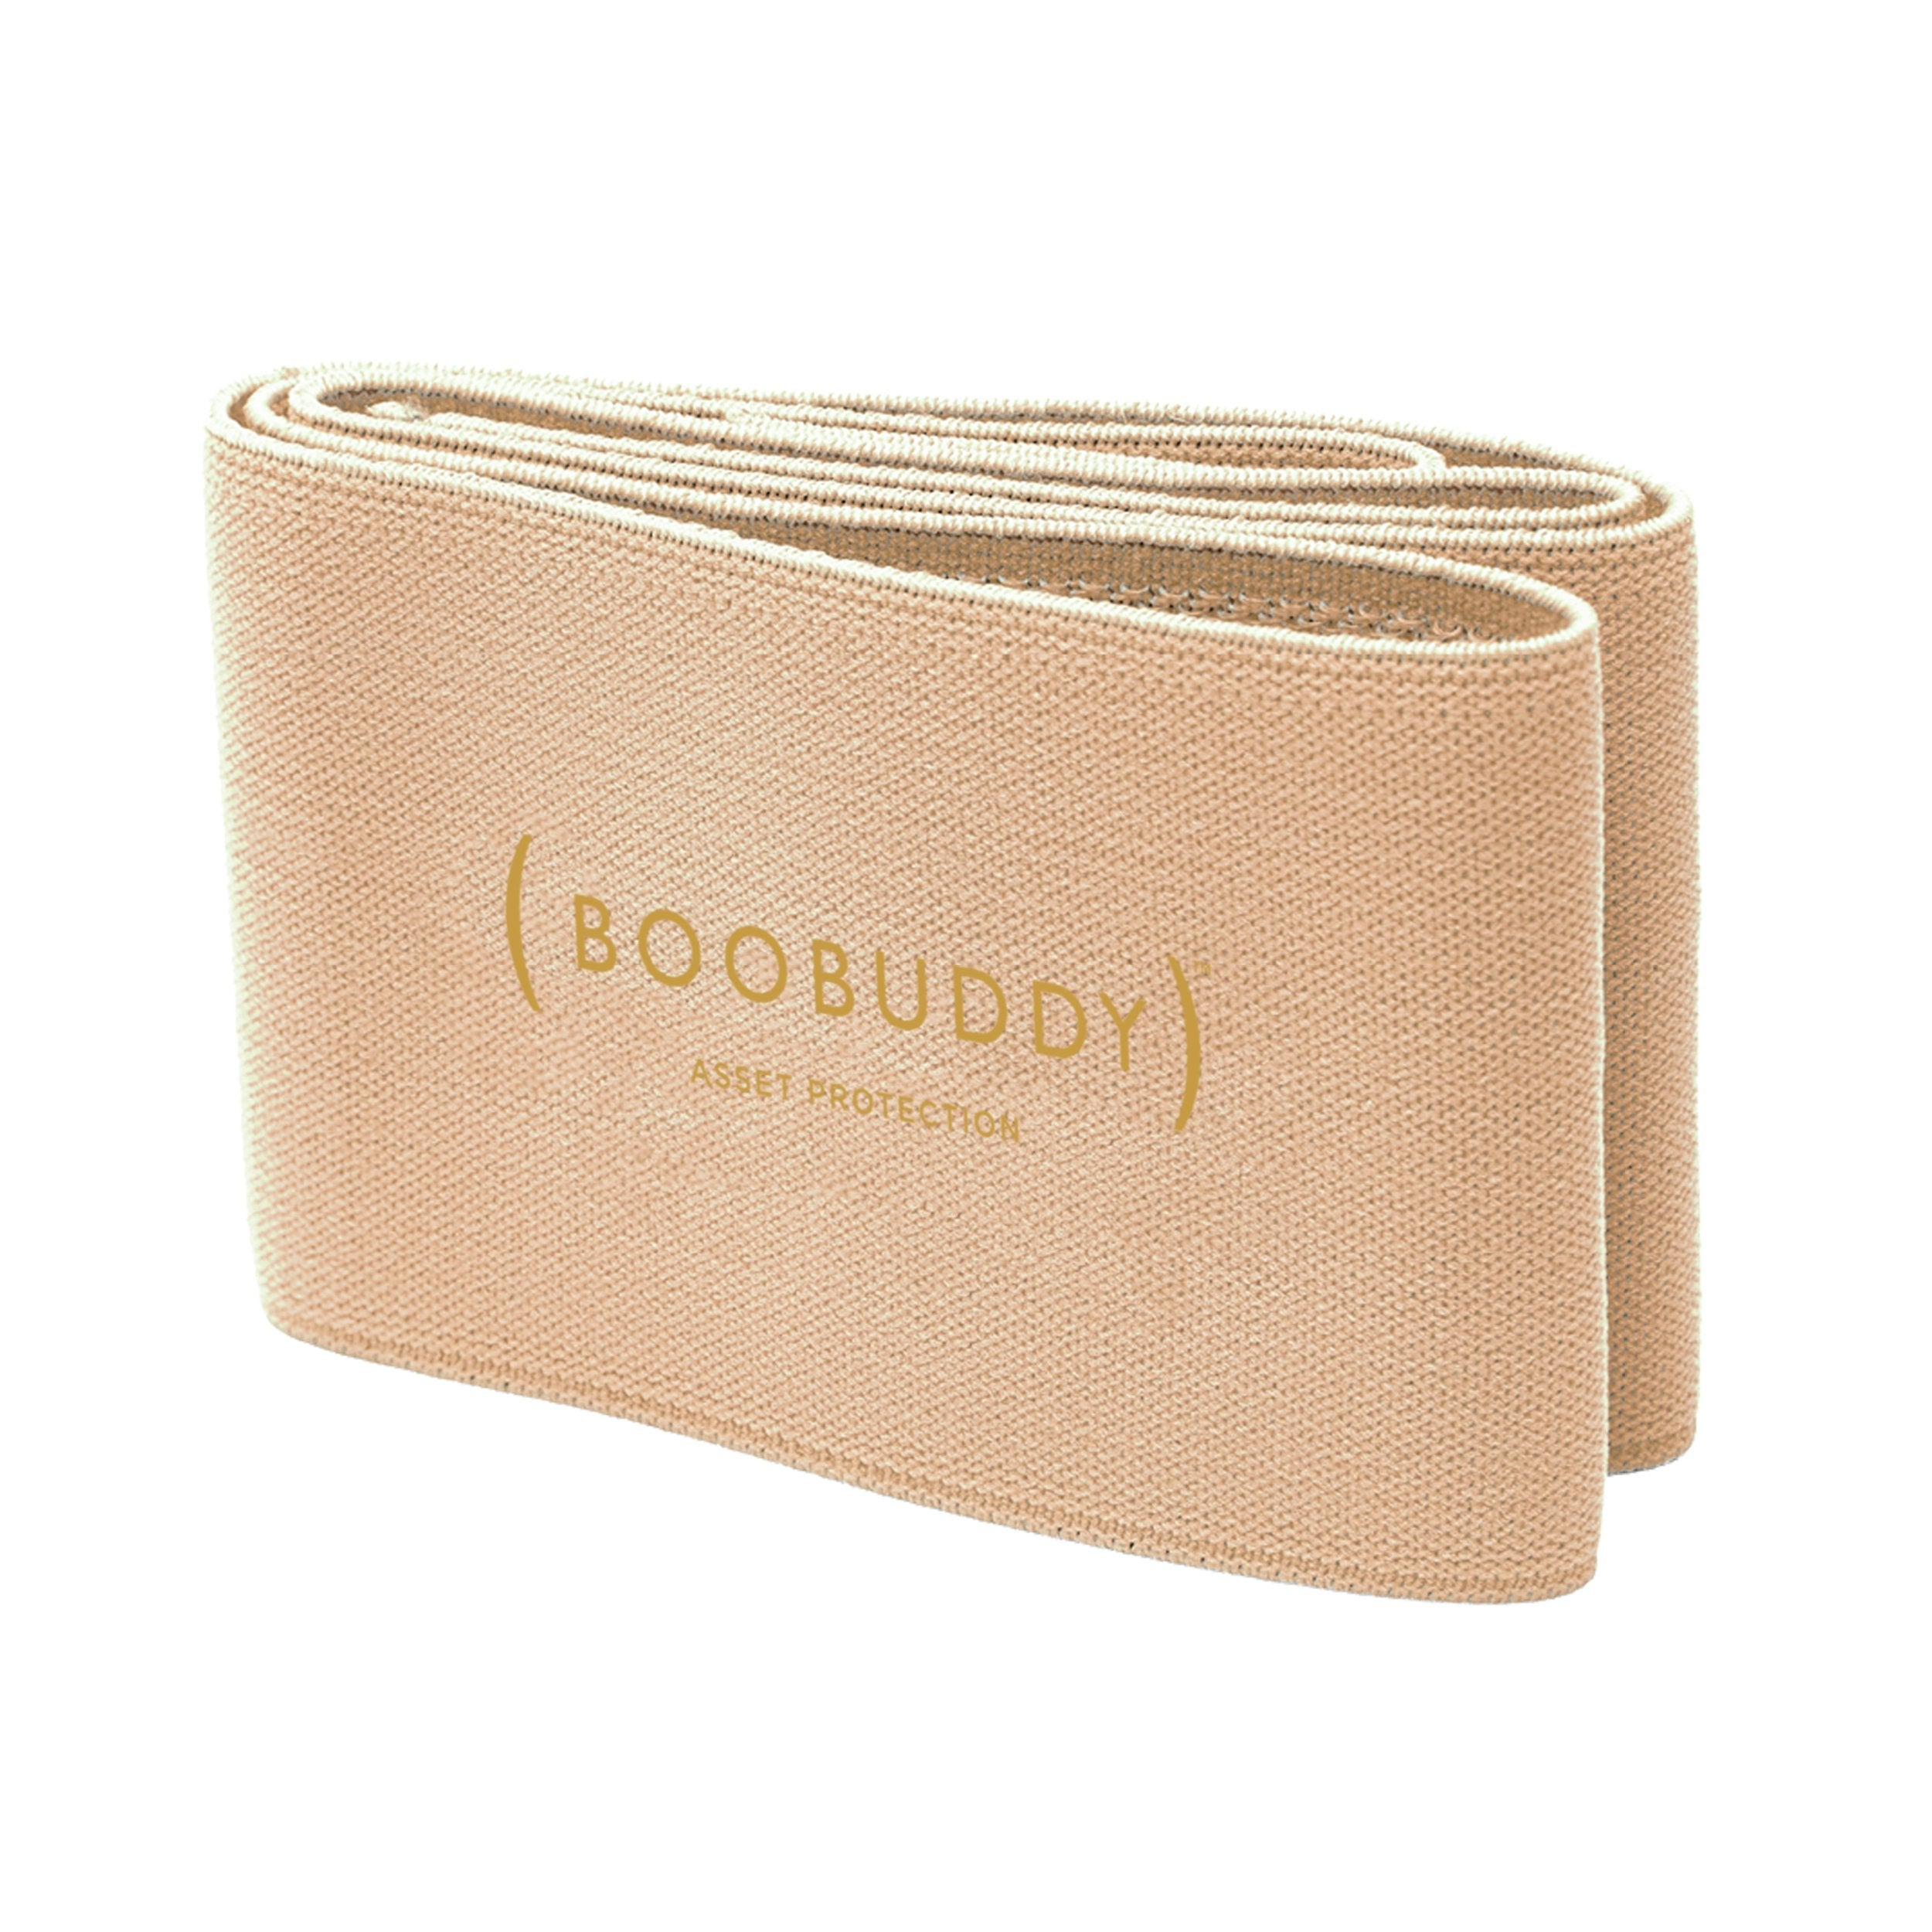 Boobuddy Adjustable Breast Support Band | Beige